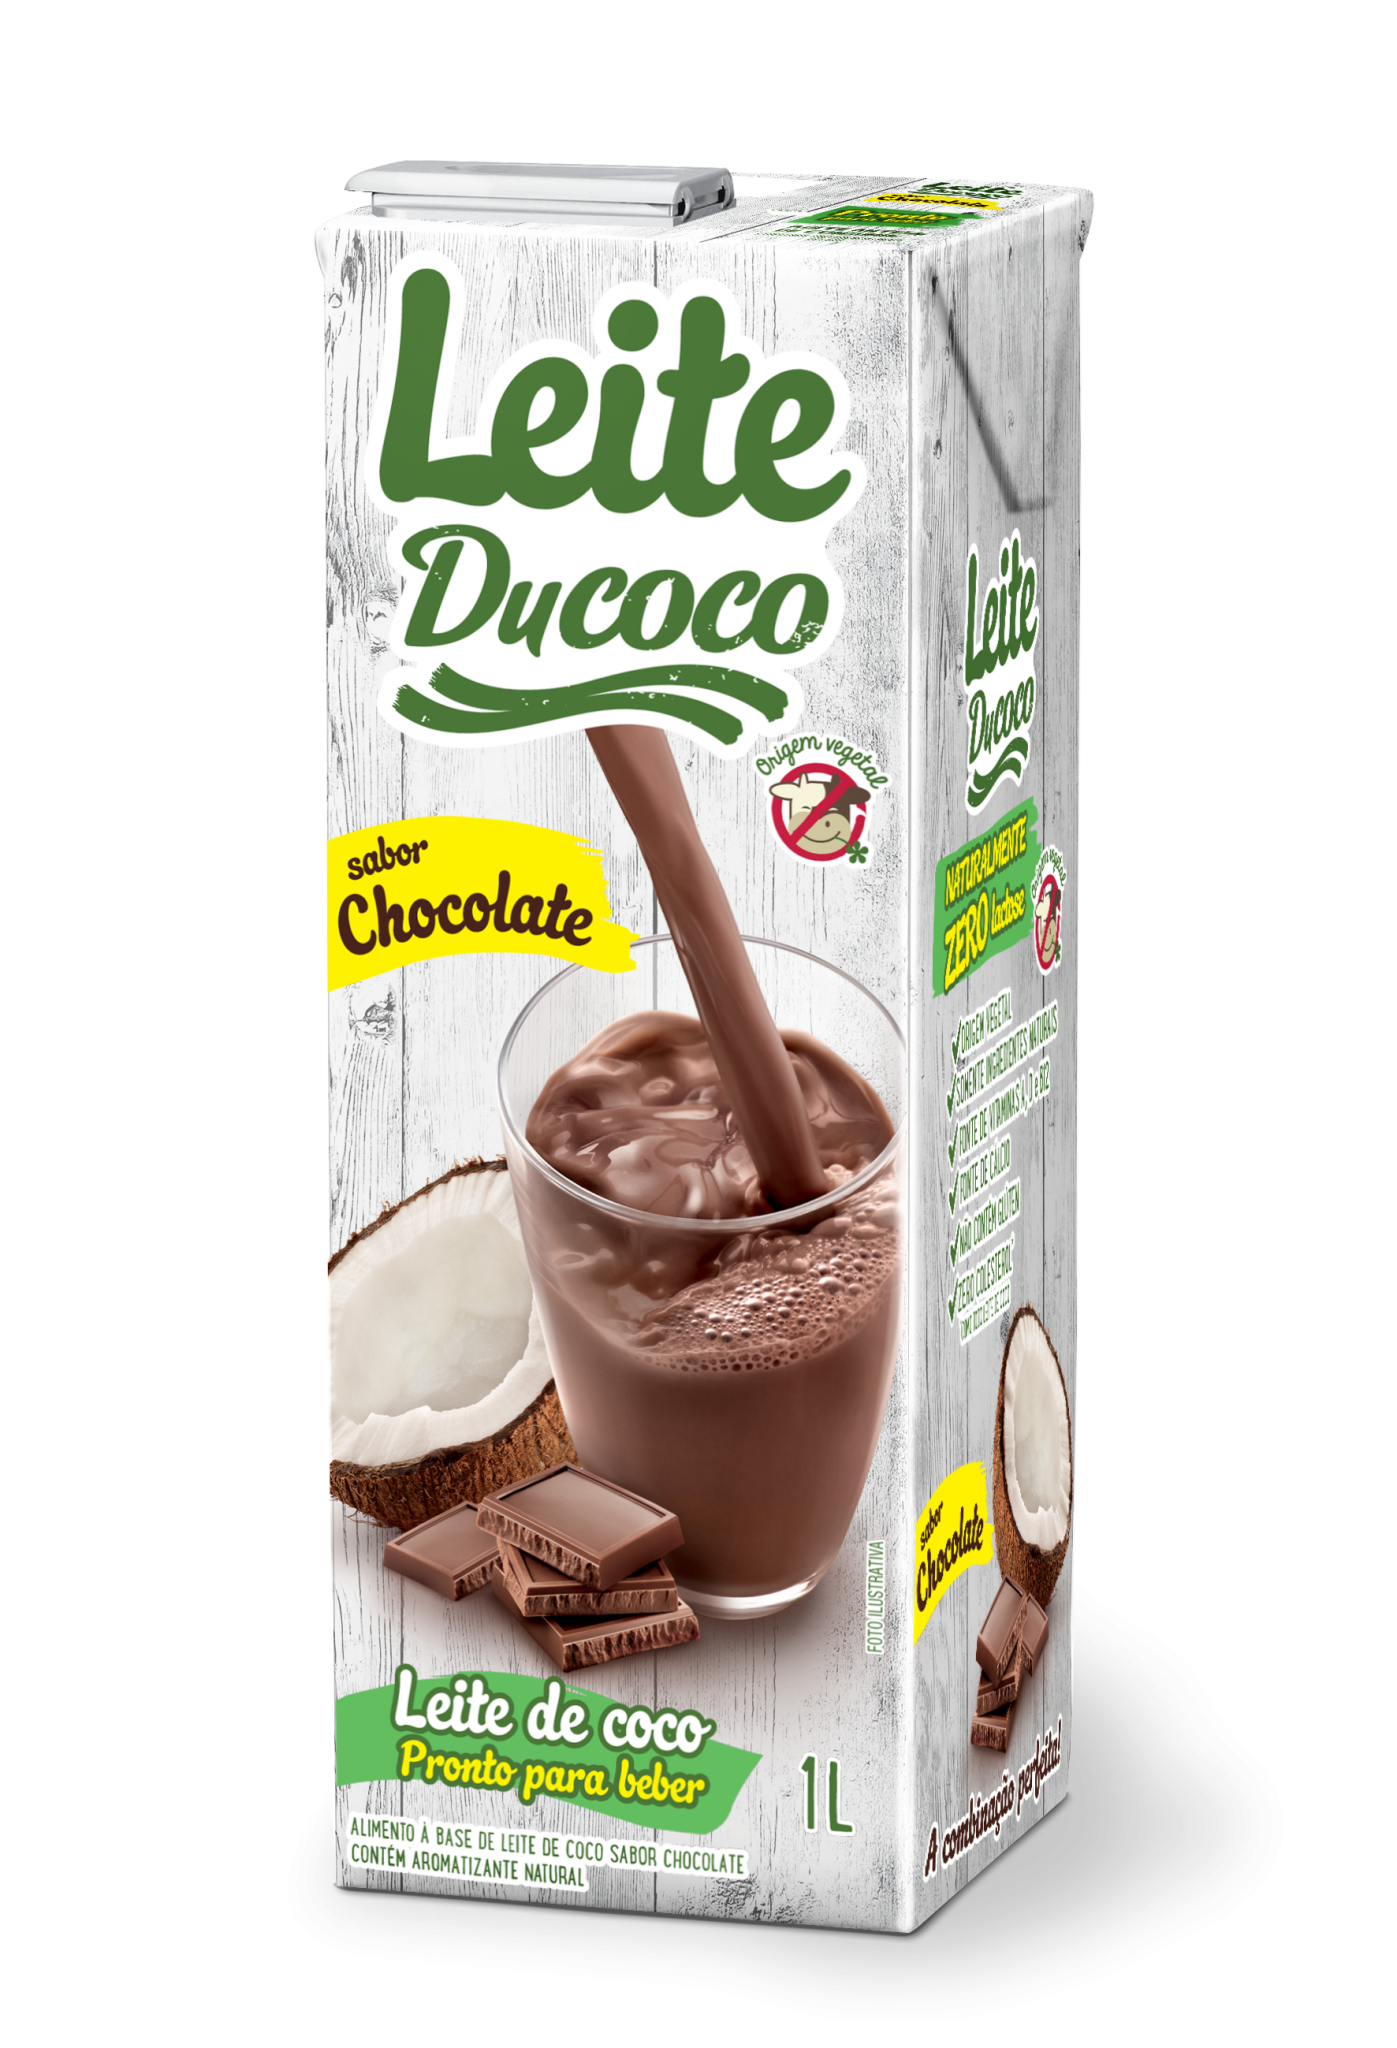 leite-ducoco-chocolate